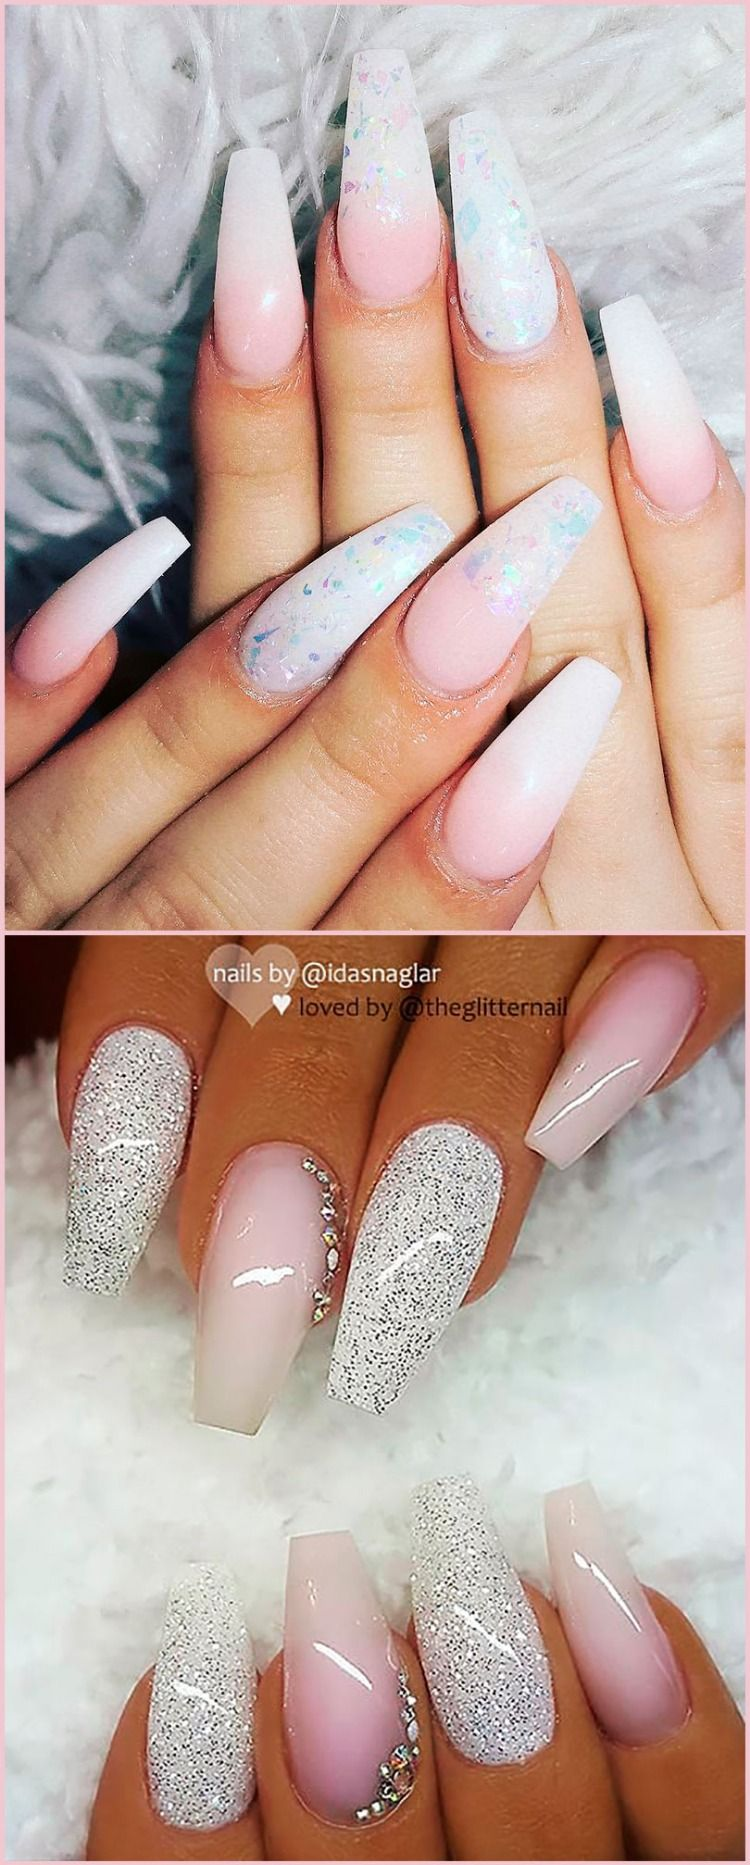 Amazing Pink And White Ombre Coffin Nails Designs Coffinnails Coffinnailshape Glitternails Ombrenails Shiny Nails Designs Pink Ombre Nails Nail Designs